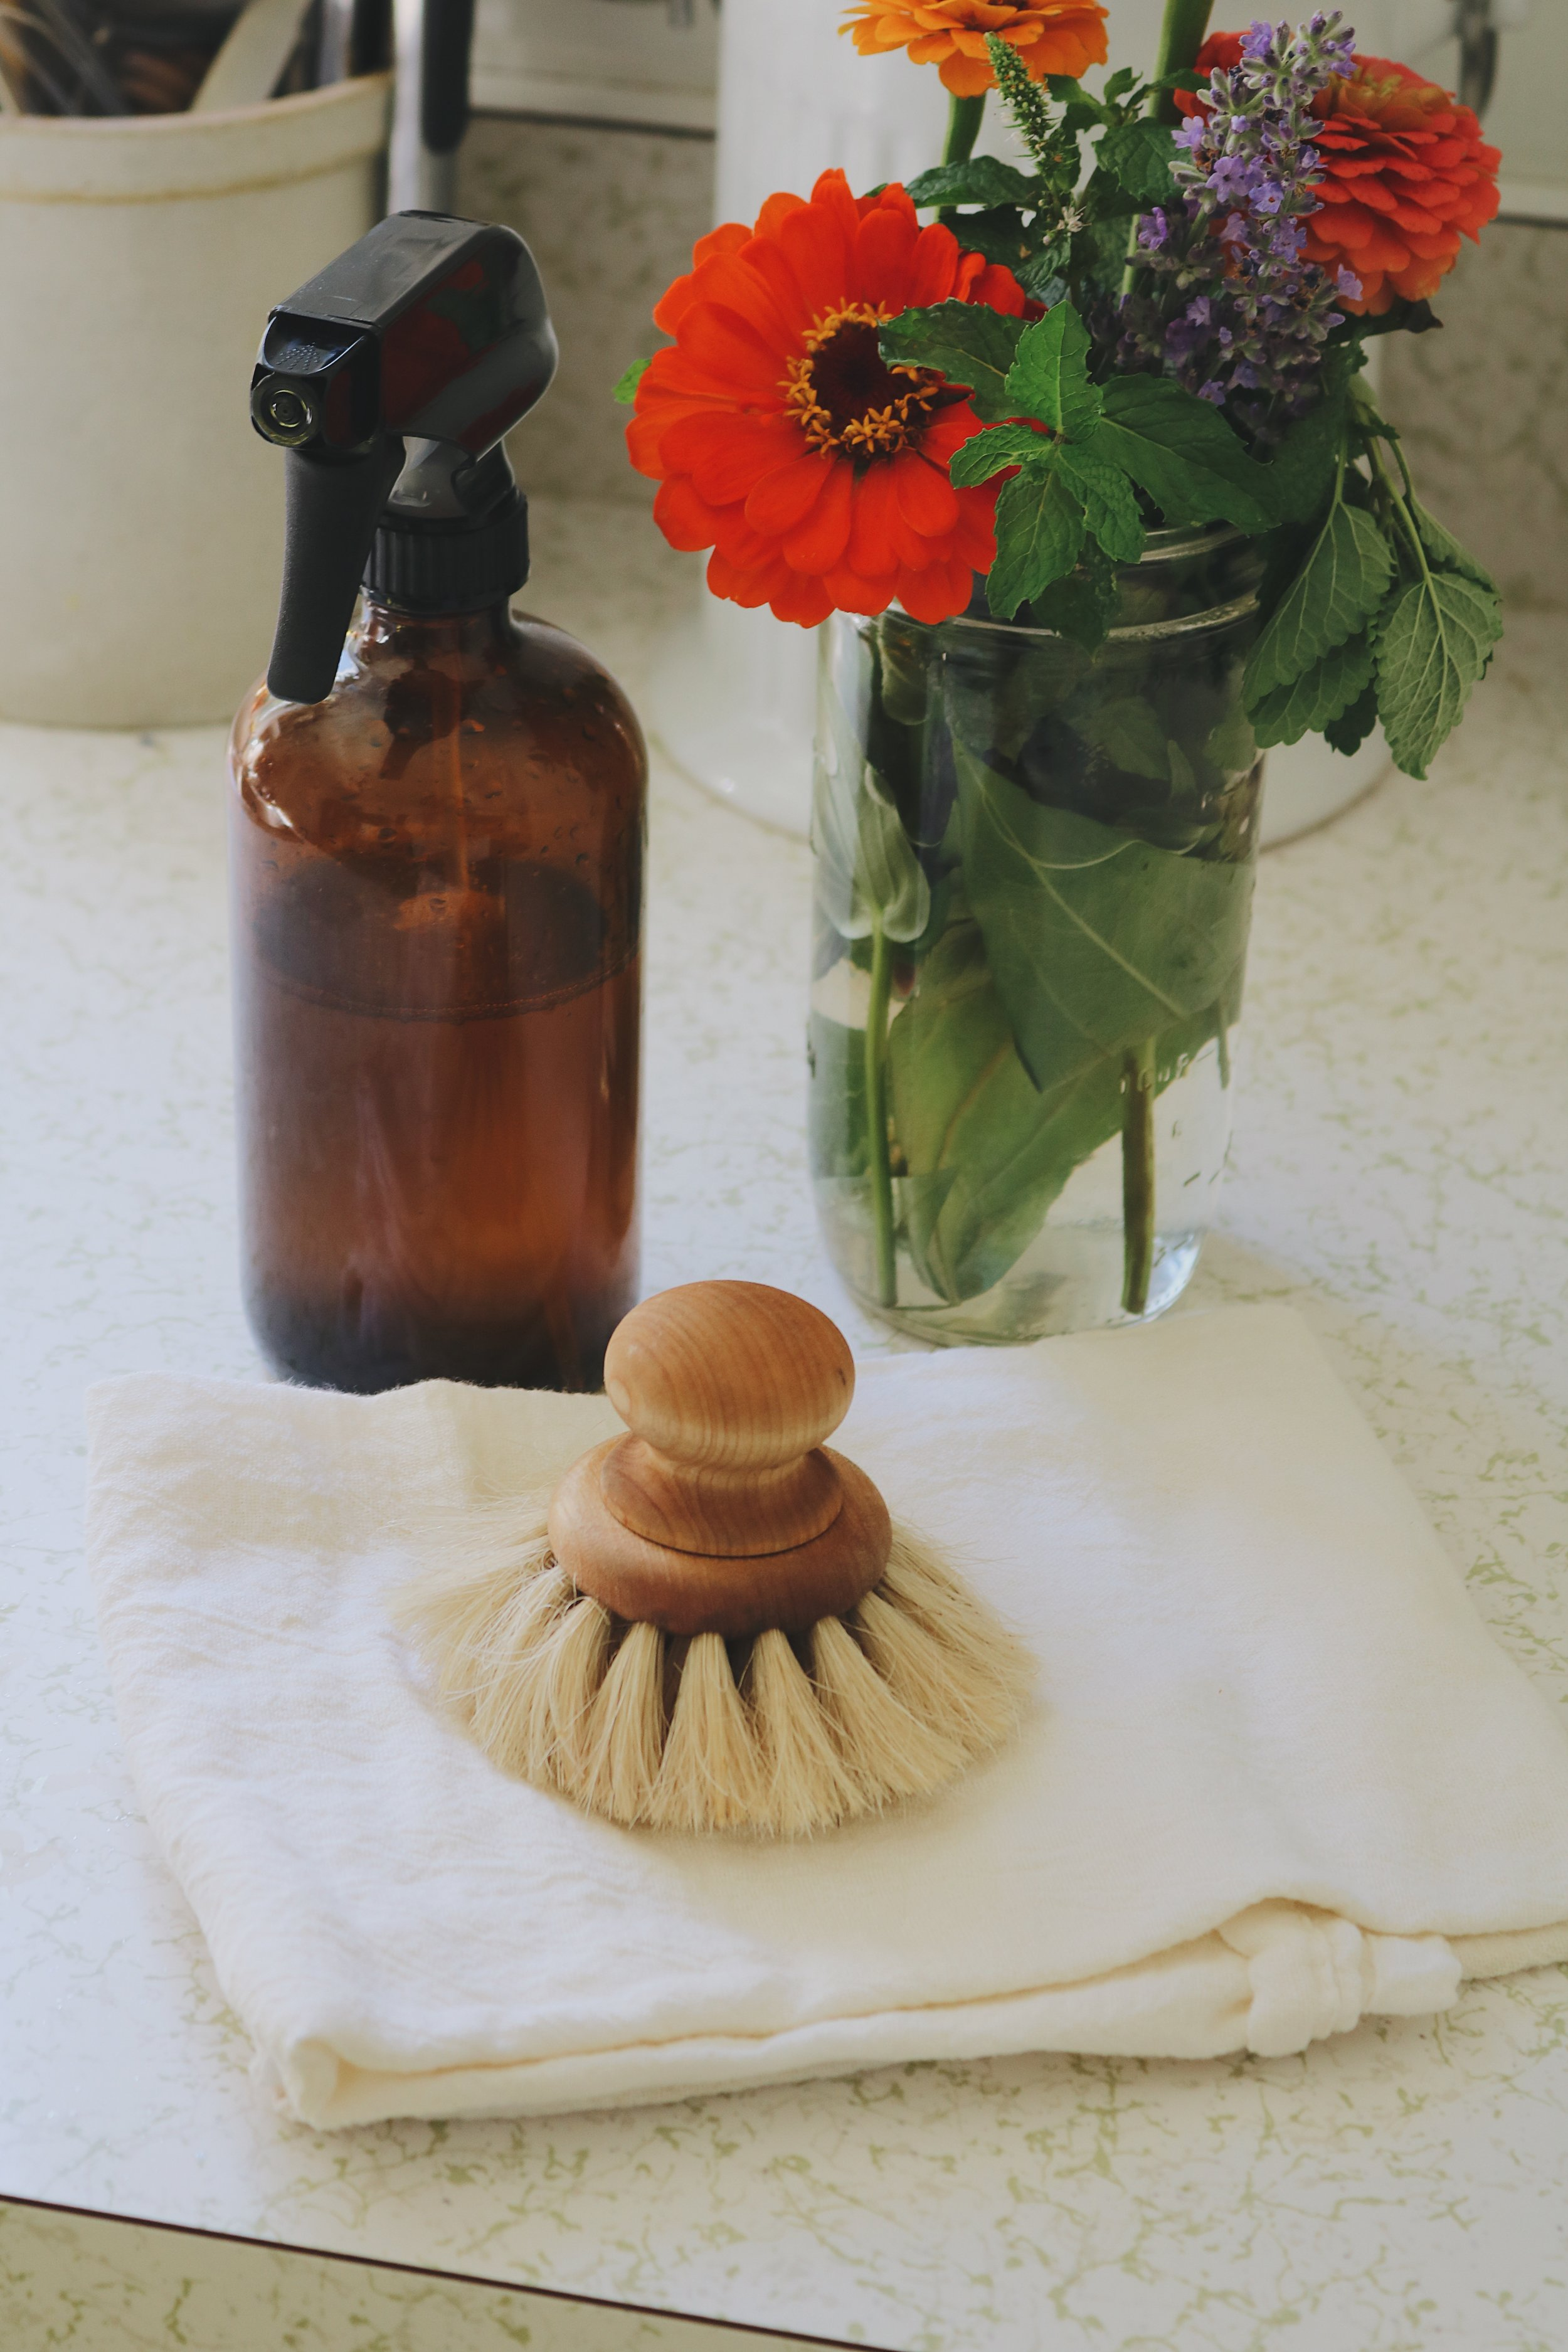 Herbal Interests | All Purpose Deodorizing Cleaner - Under A Tin Roof Blog